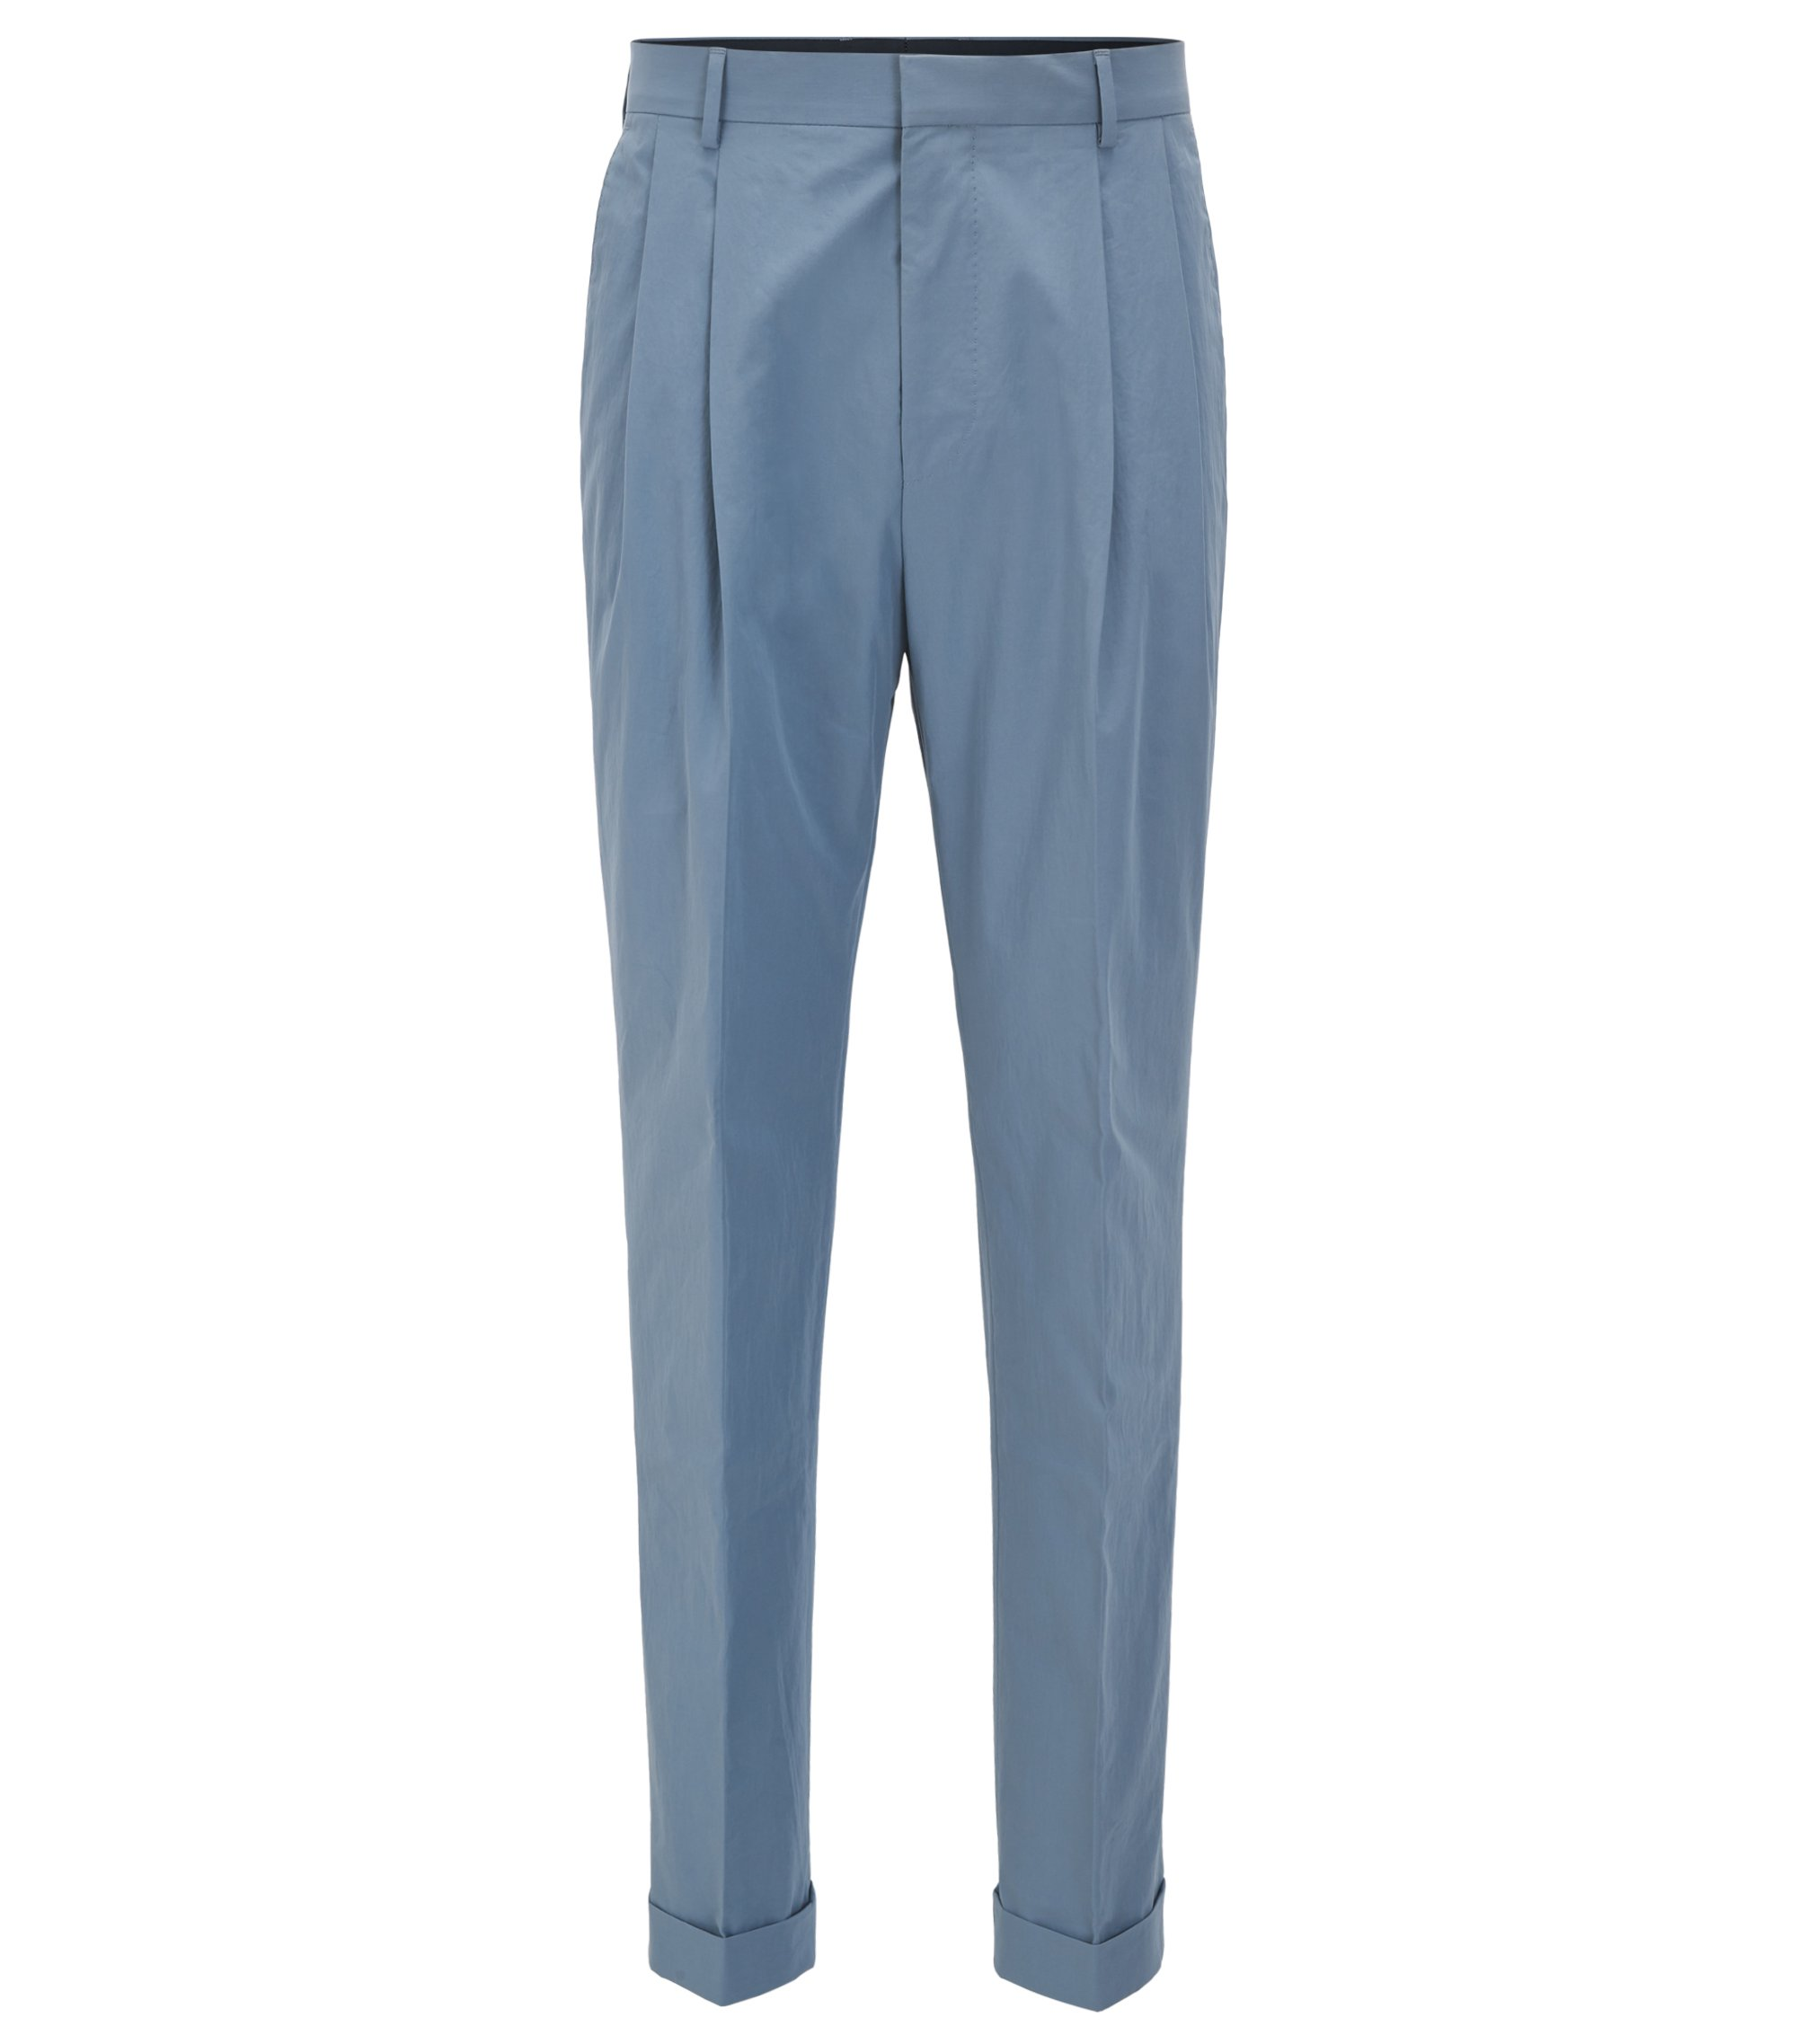 Pantalon Relaxed Fit en coton au toucher papier, Gris